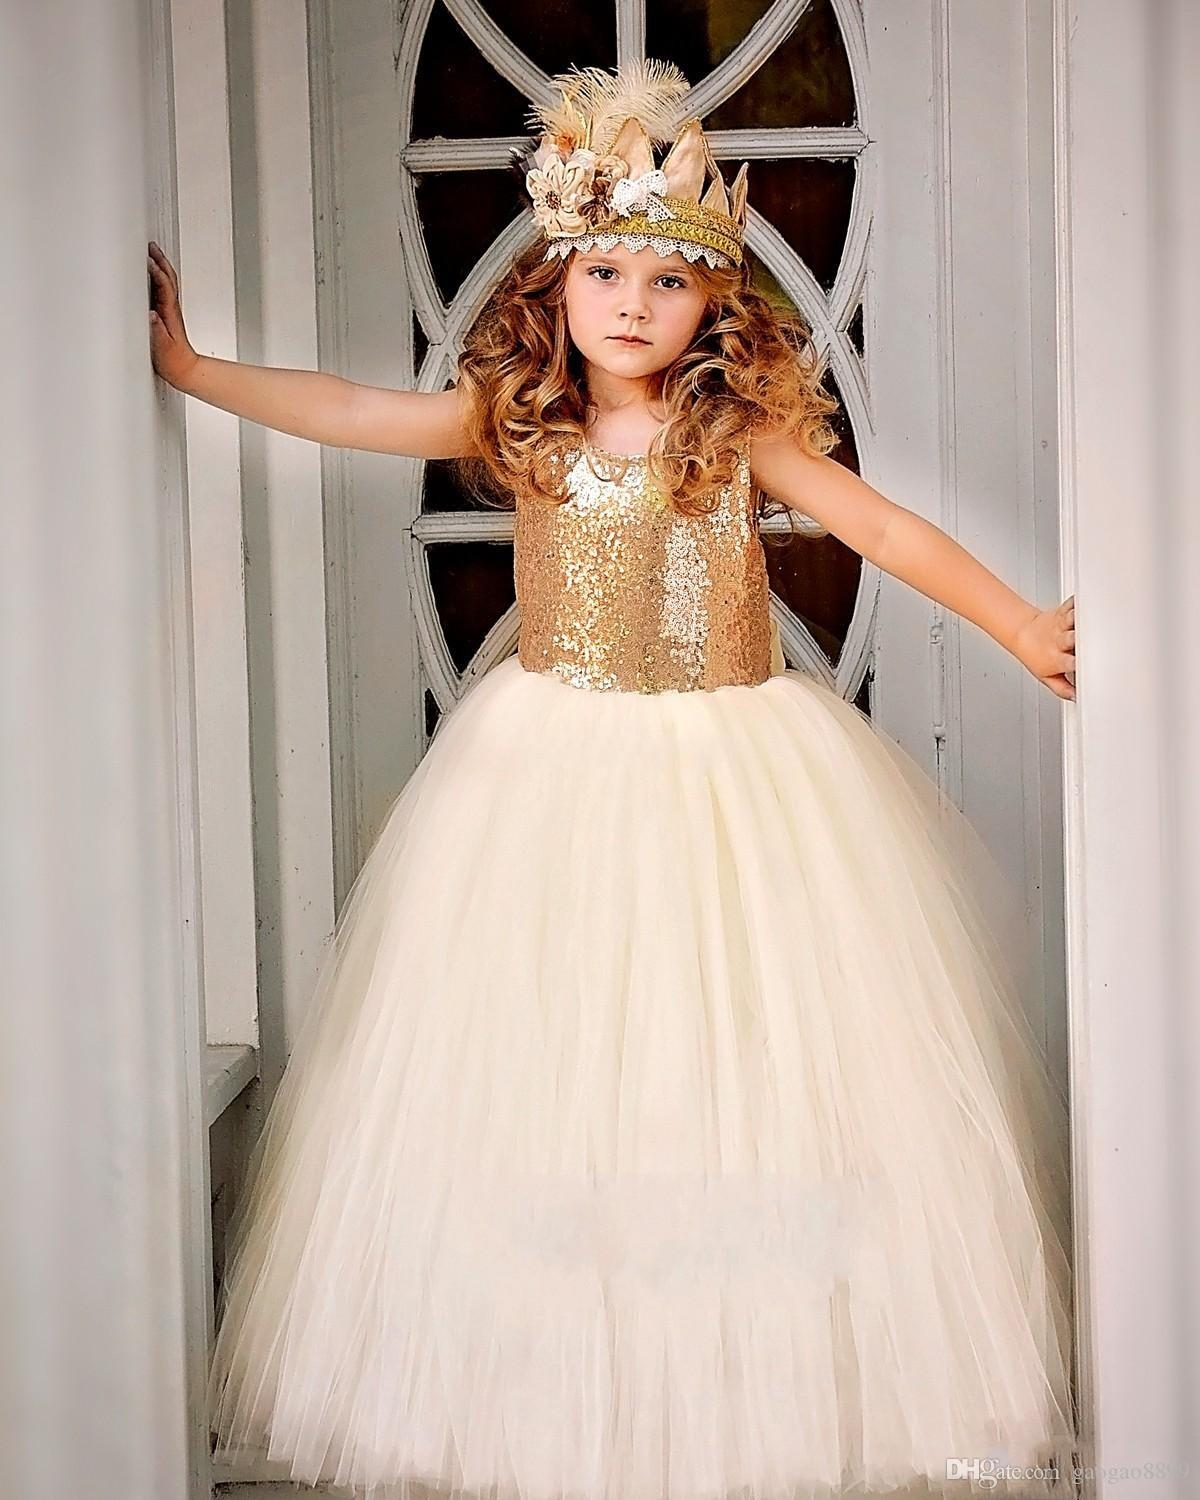 2017 Sparkly Gold Sequin A Line Flower Girl Dresses Tutu Sash Crew Neck Baby Child Birthday Party Formal Gowns Girls Pageant Dress Cheap DTJ